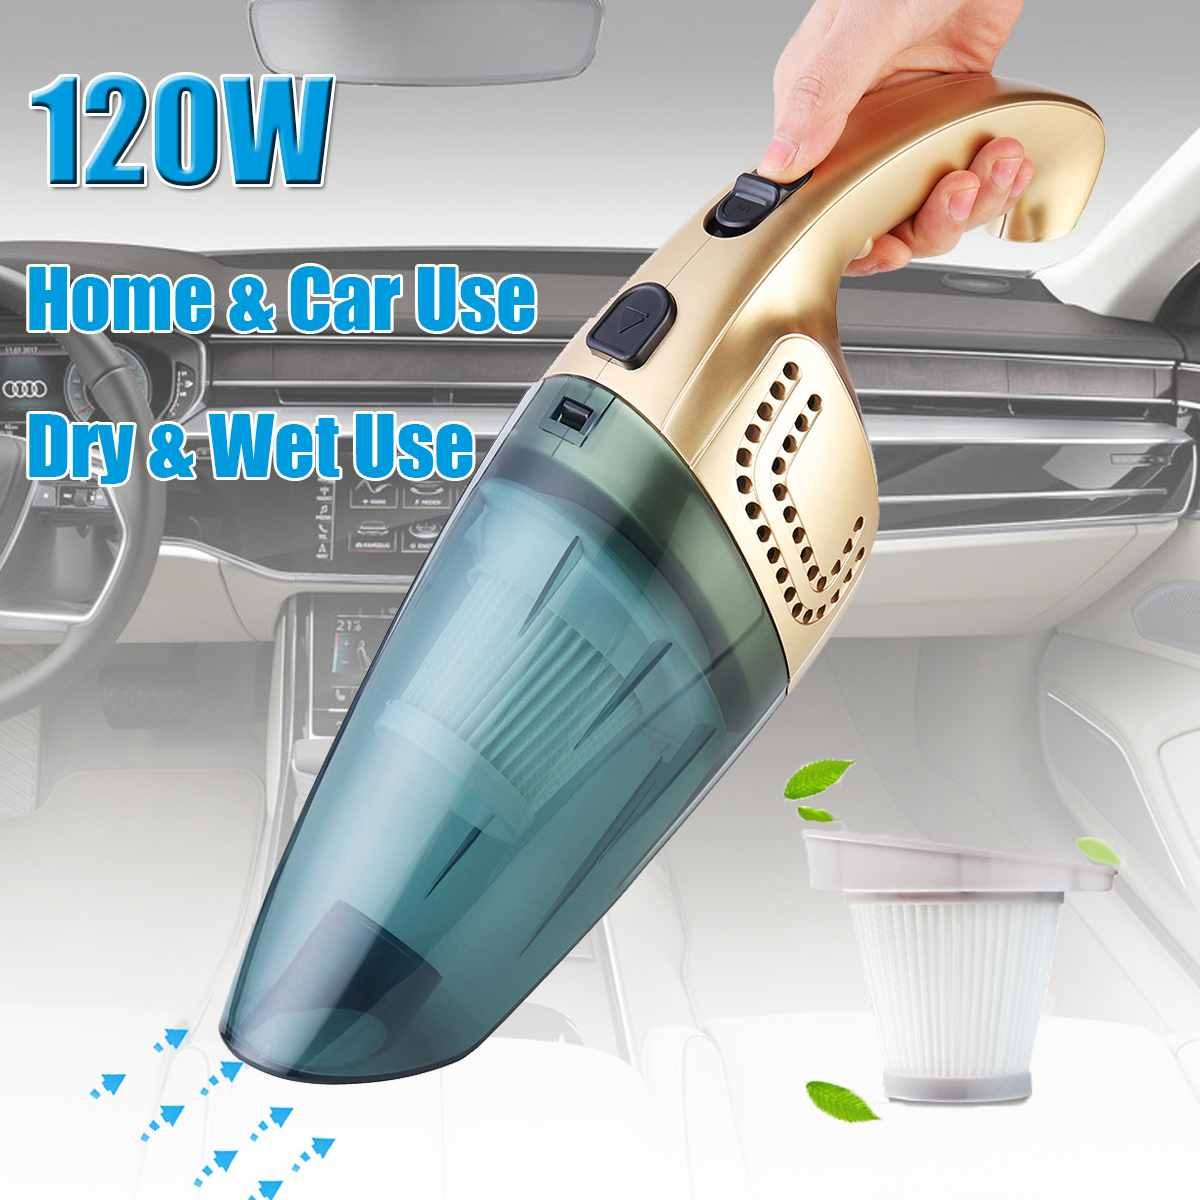 120W 220V Portable Home Car Cordless Vacuum Cleaner Rechargeable Dust Collector Sweeper Dual Use Dry/Wet 2600mAh Vacuum Sweeper